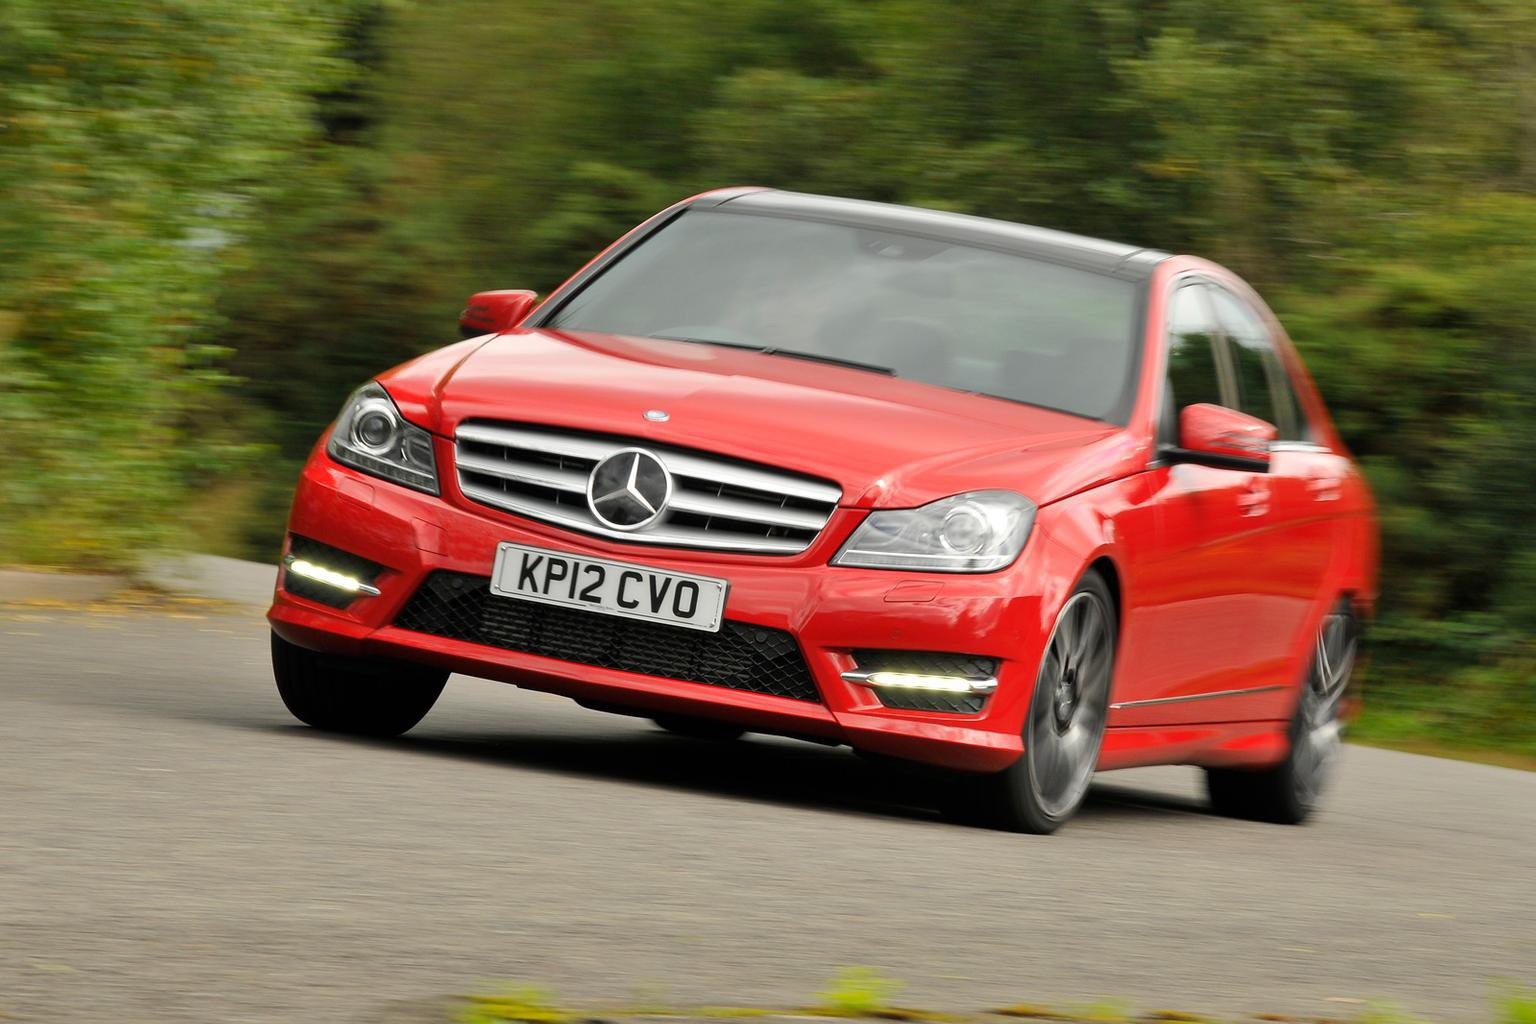 Used Mercedes C-Class from 16k